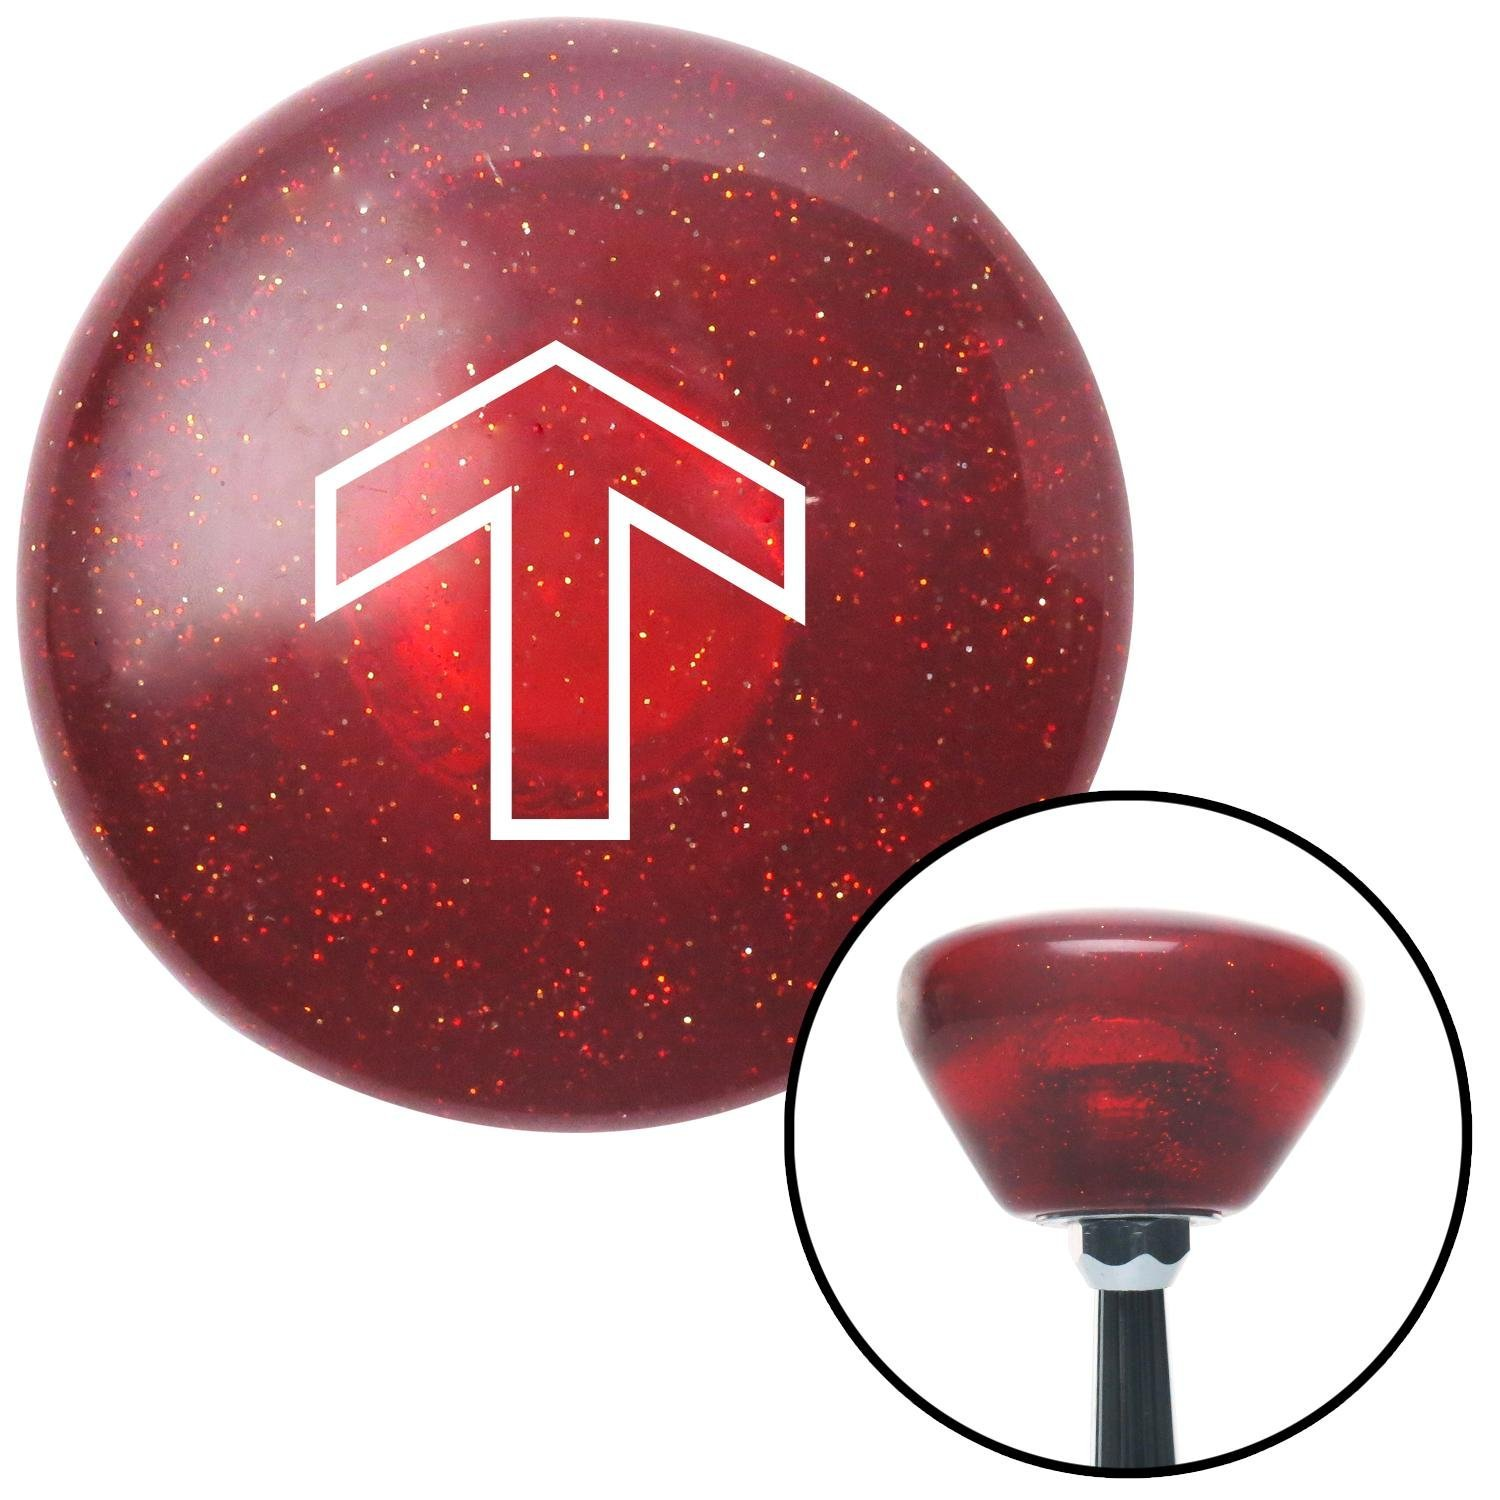 White Broad Arrow Up American Shifter 193443 Red Retro Metal Flake Shift Knob with M16 x 1.5 Insert